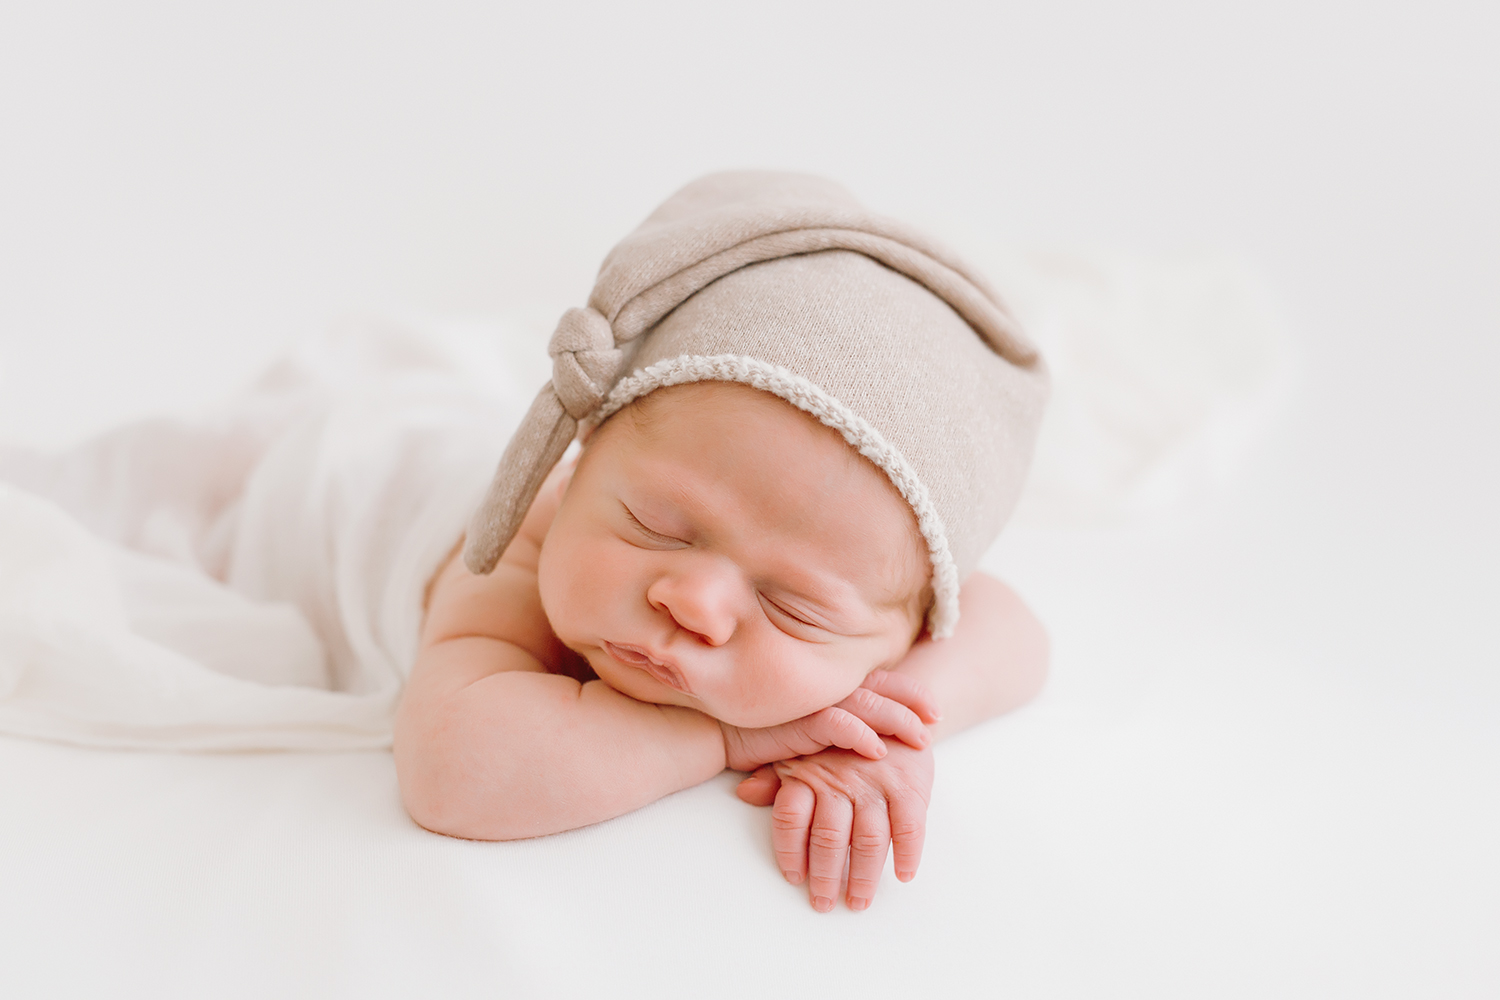 Northern_Virginia_Newborn_Photography_292.jpg